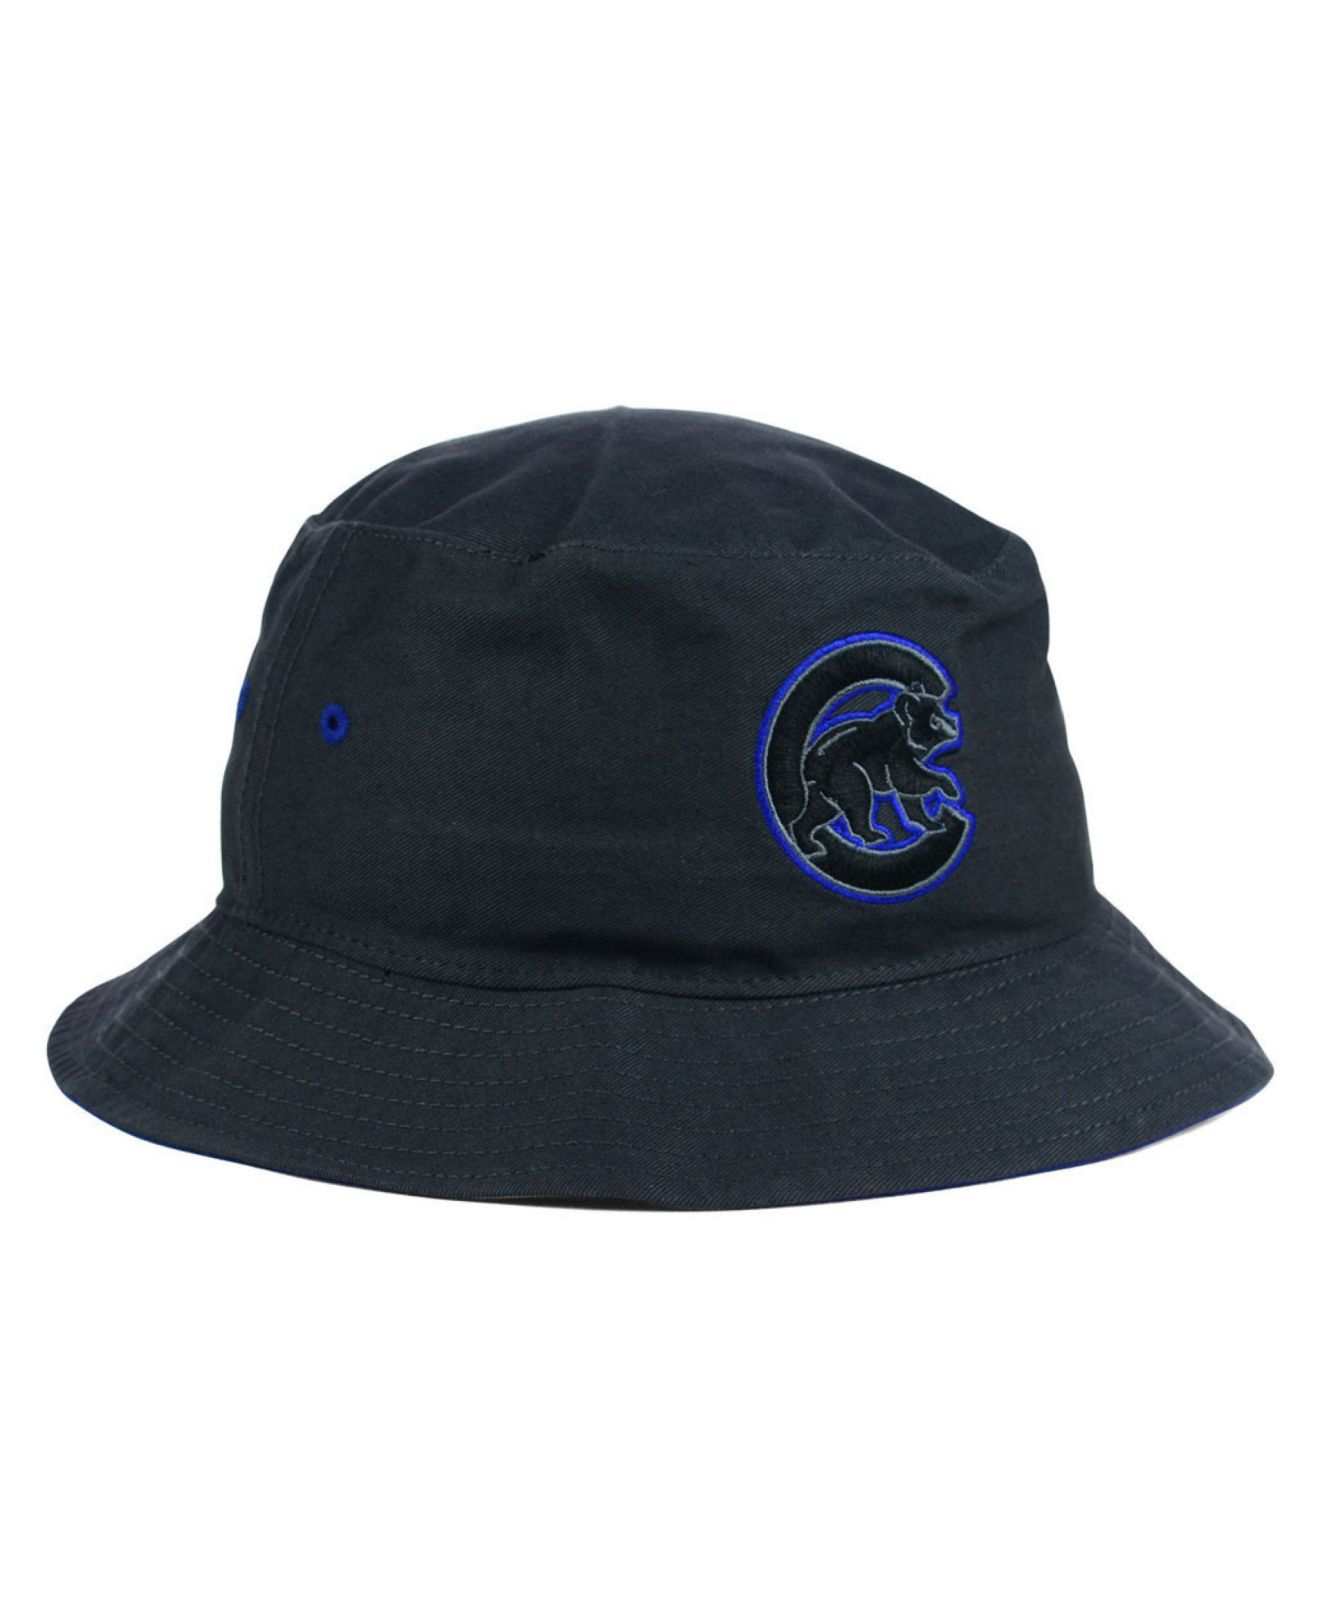 ec232eca39b ... new arrivals lyst 47 brand chicago cubs turbo bucket hat in blue 66e6d  ad852